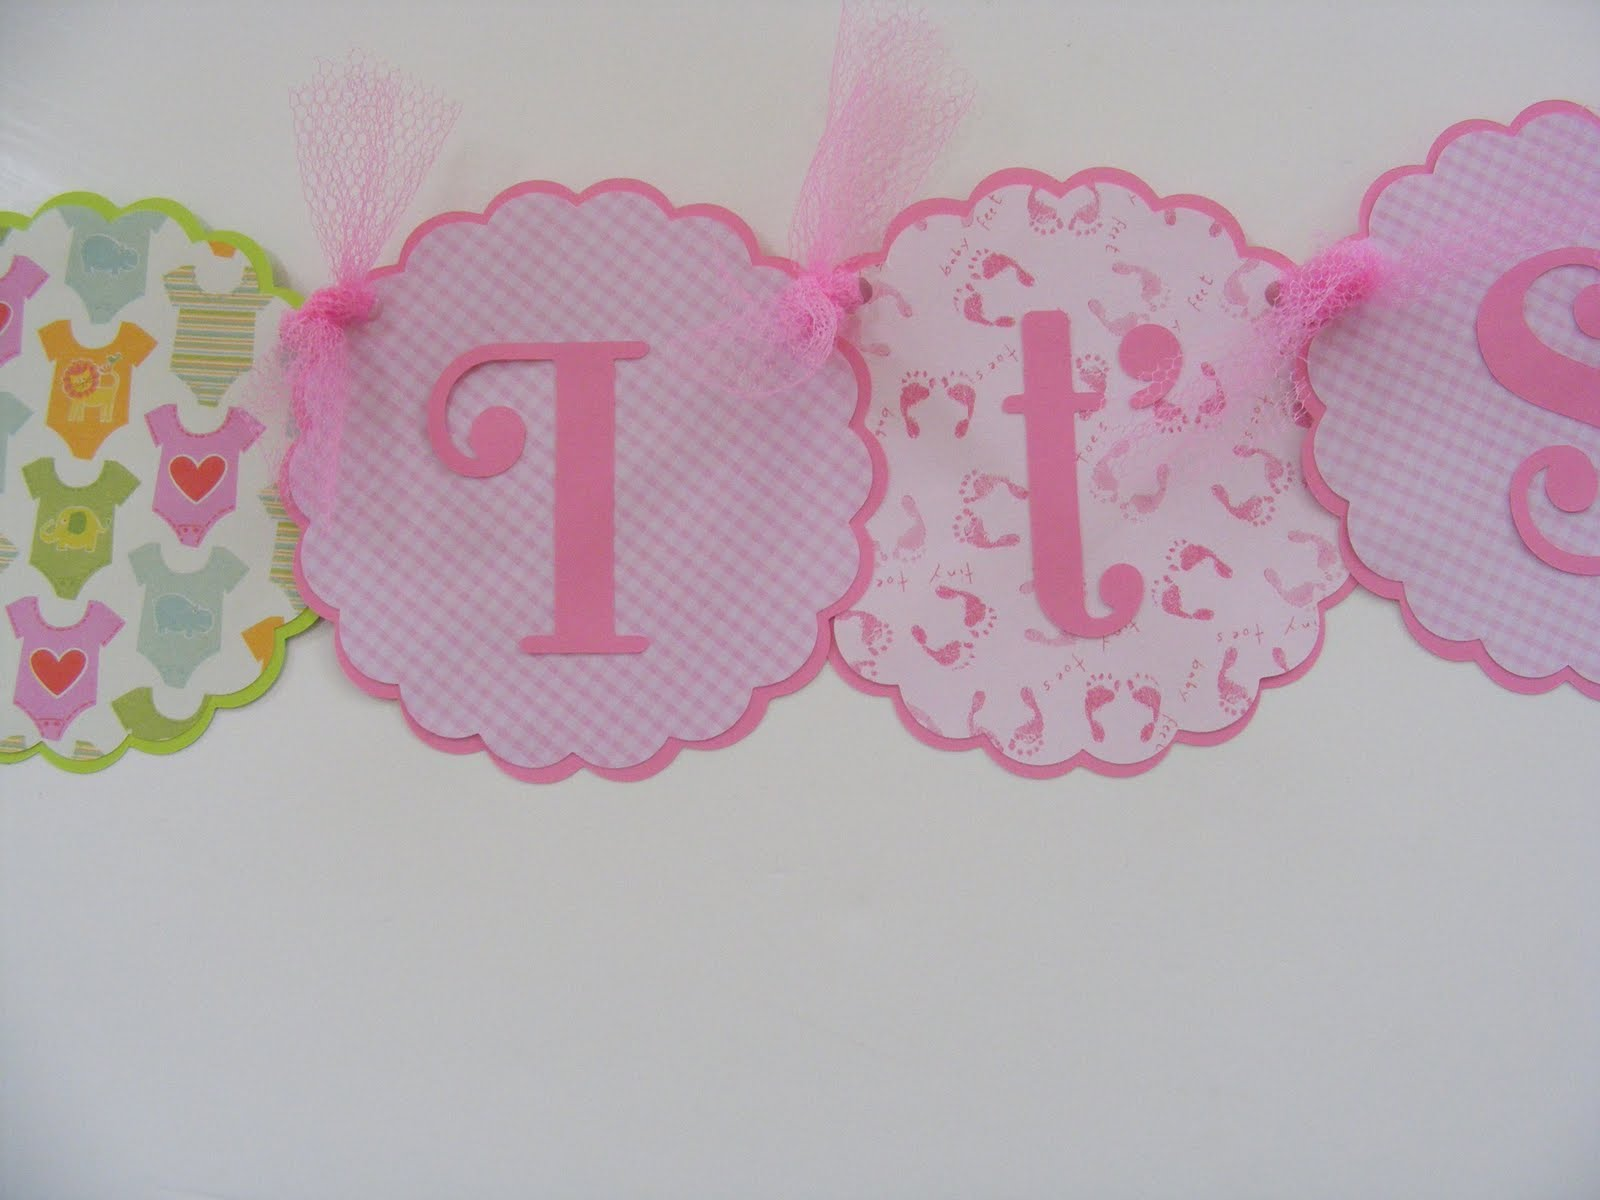 Whimsical creations by ann its a girl new baby shower banner Baby shower banners